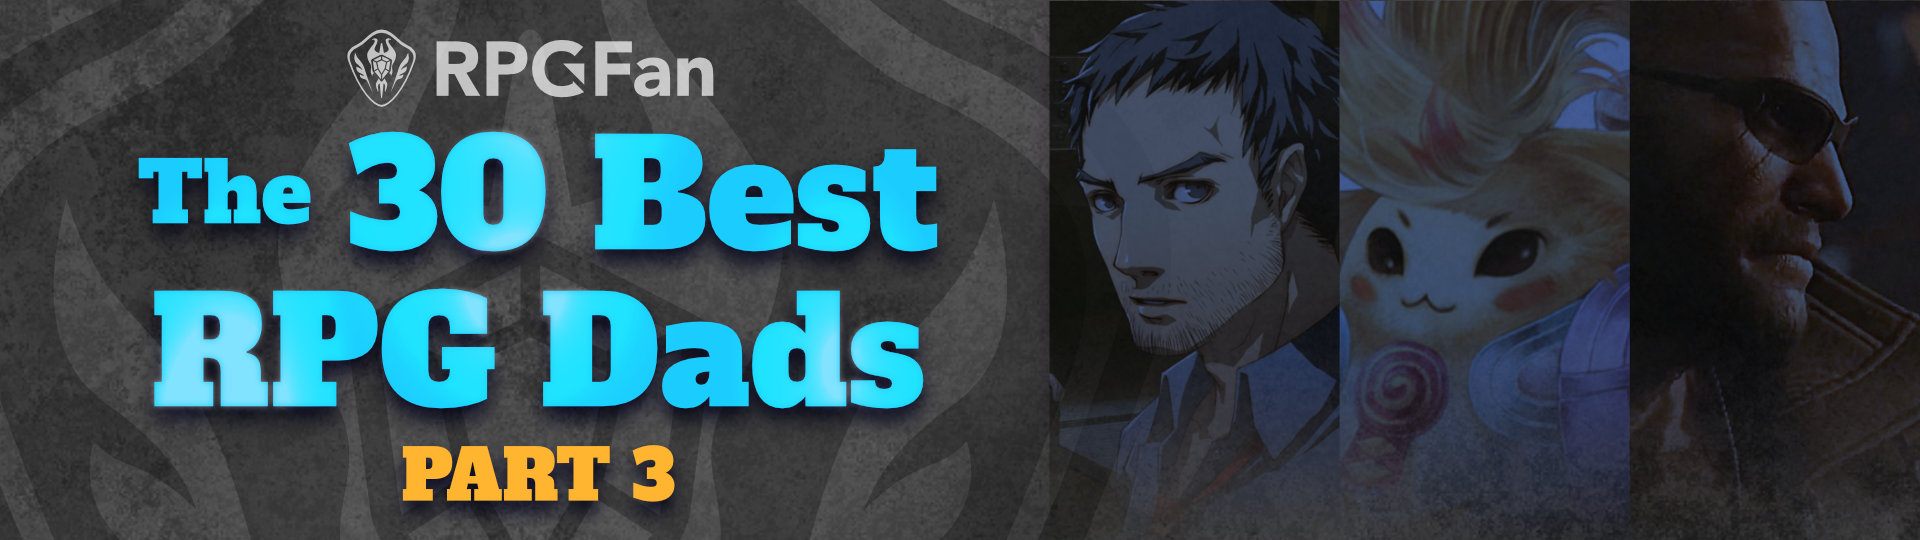 The 30 Best RPG Dads Featured Part 3